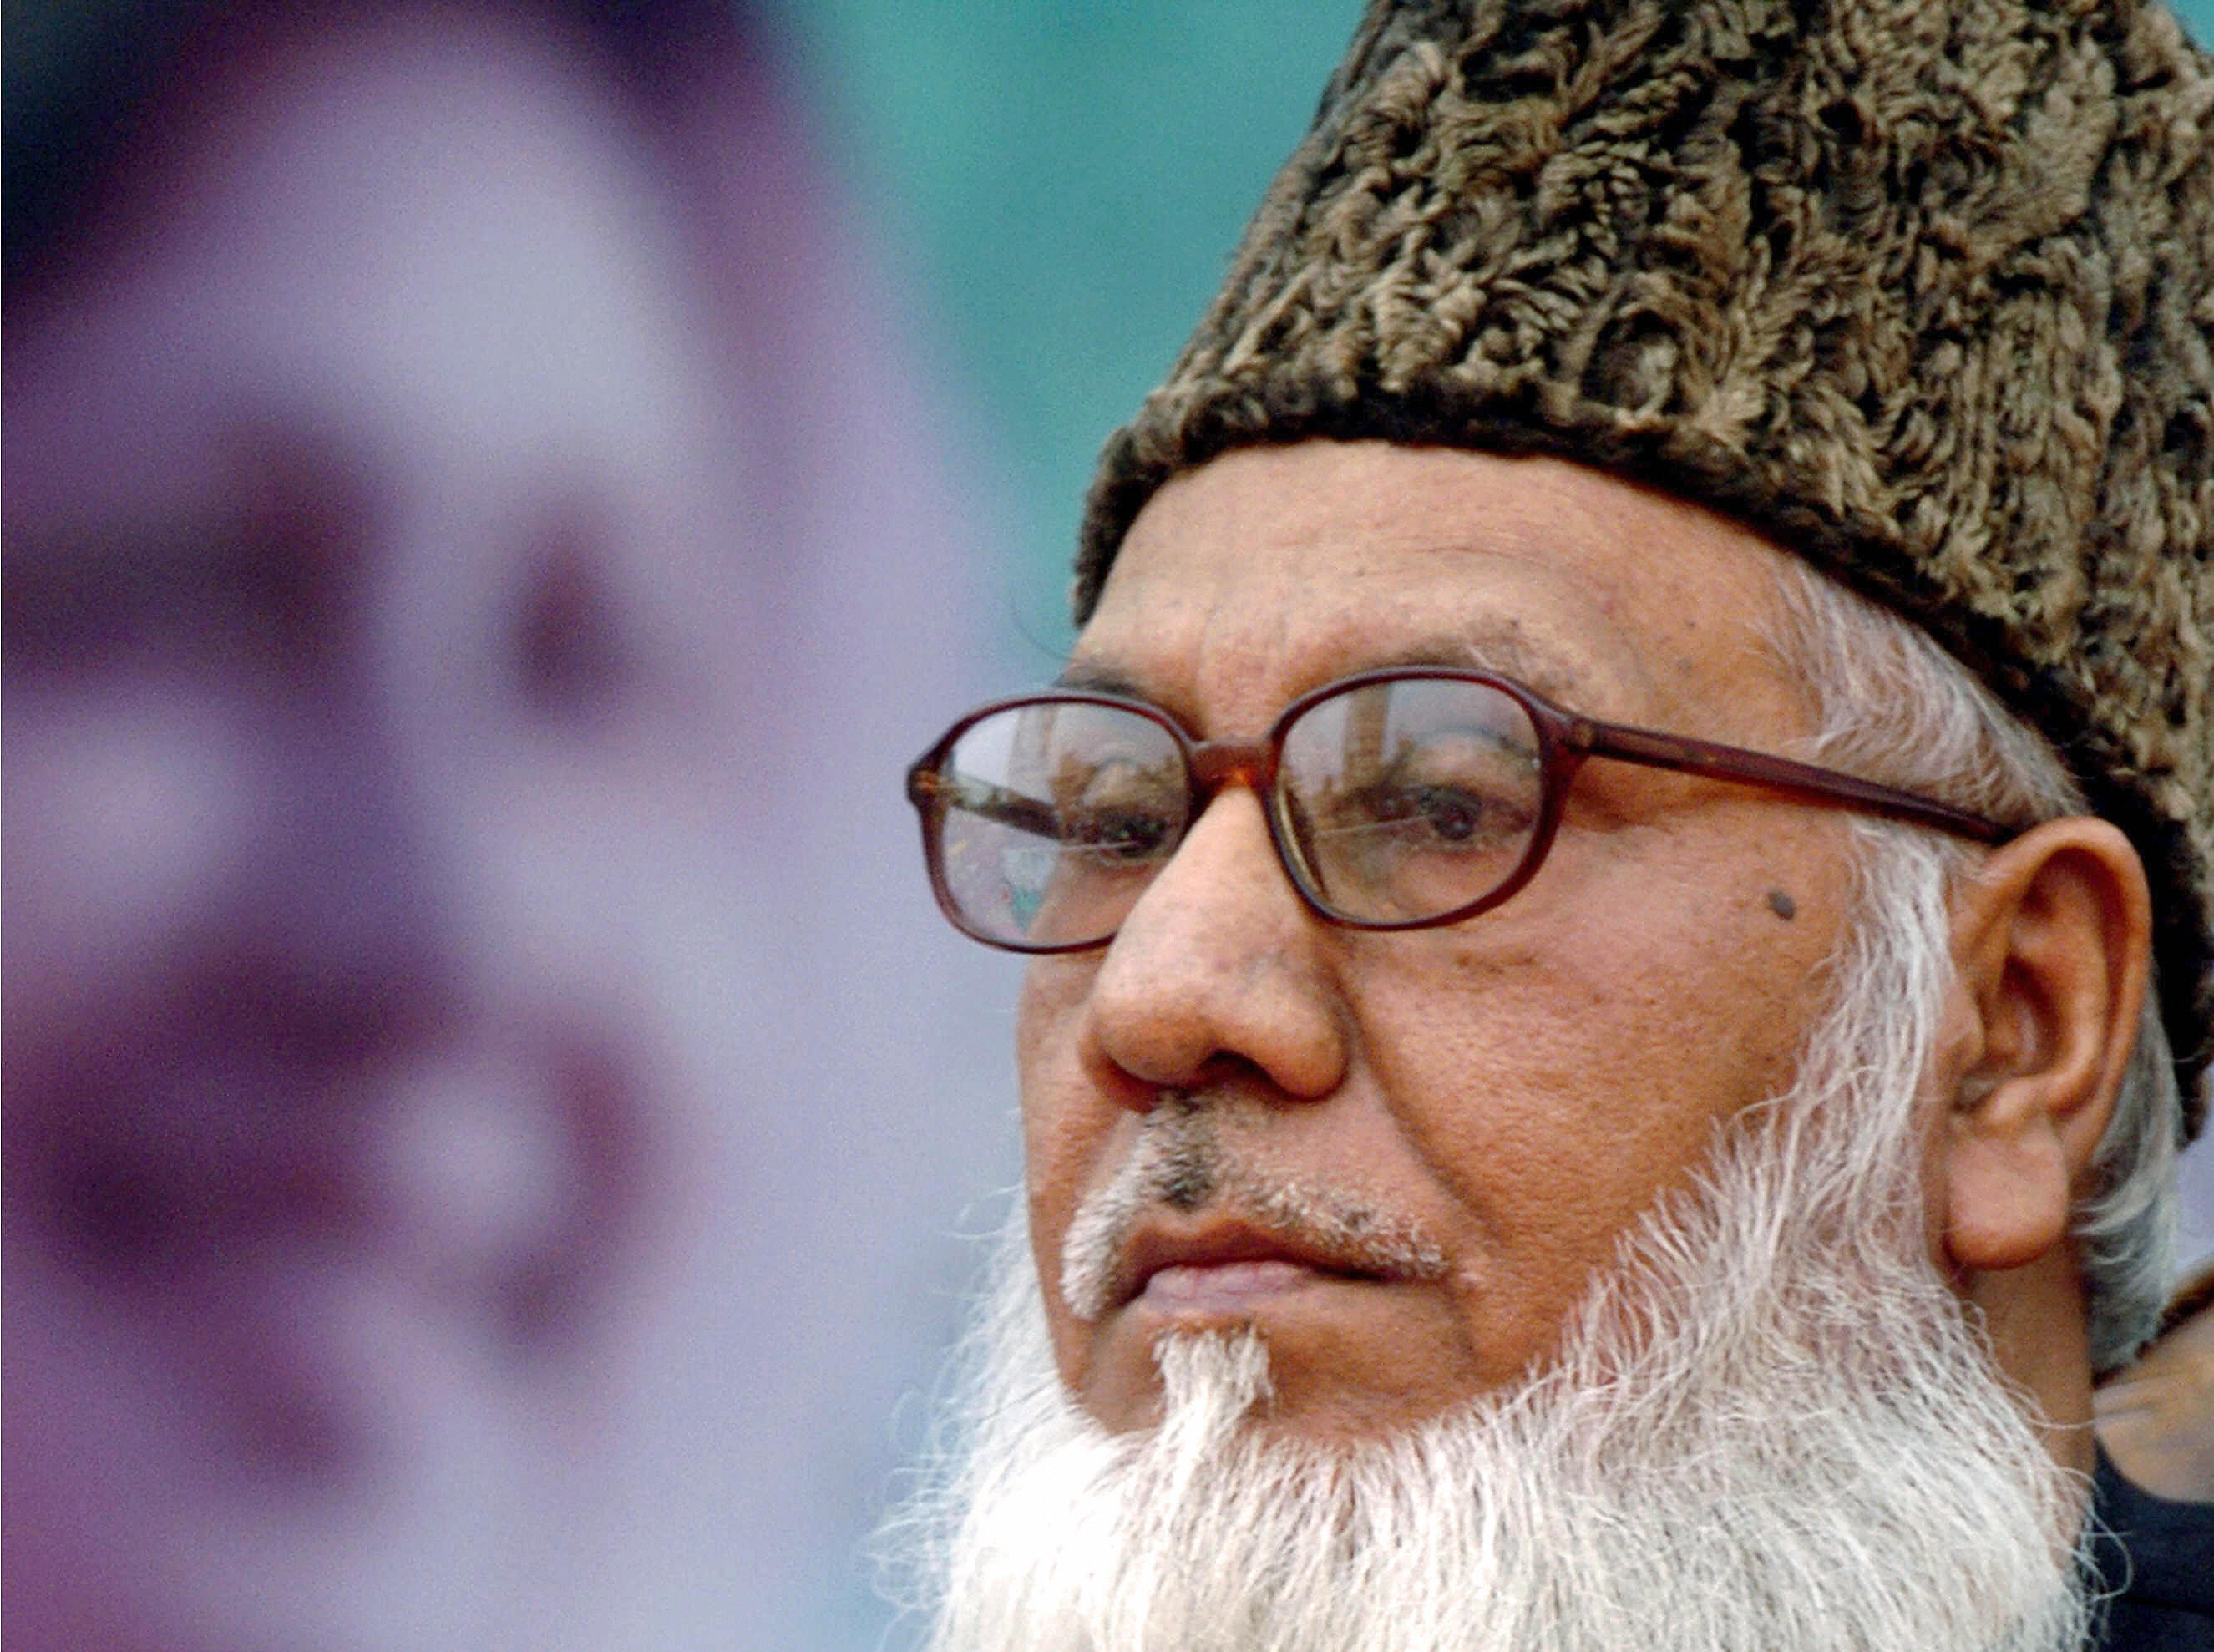 A file photo from 2006 shows leader of the Jamaat-e-Islami Islamic party in Bangladesh Matiur Rahman Nizami